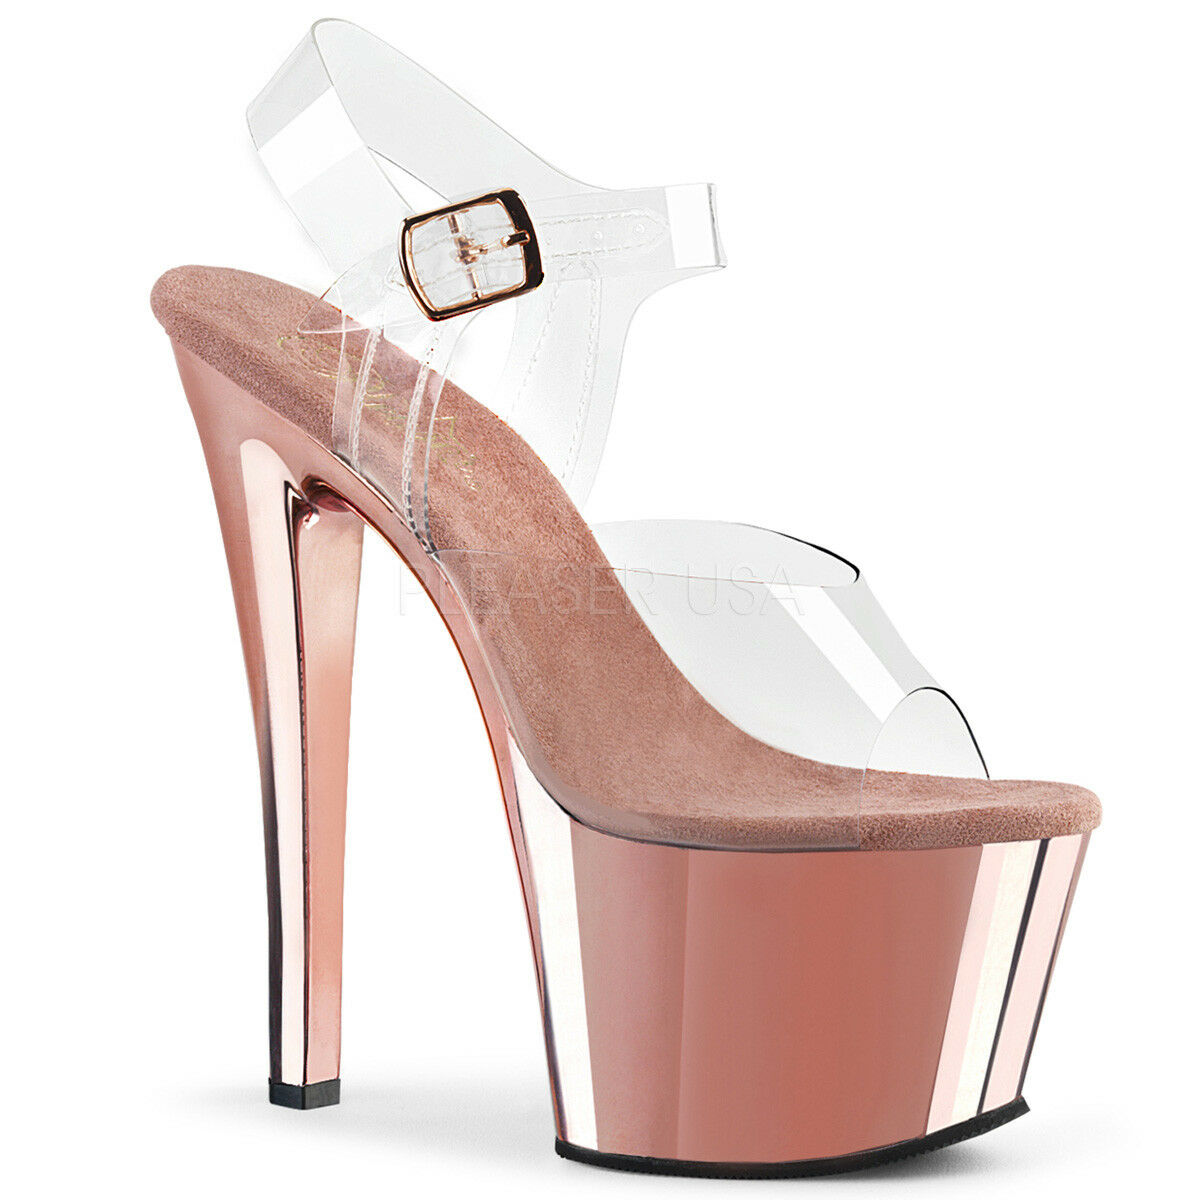 Pleaser SKY-308 Clair Or Rose Plateforme Pole Dancing Stiletto Chaussures Sandales